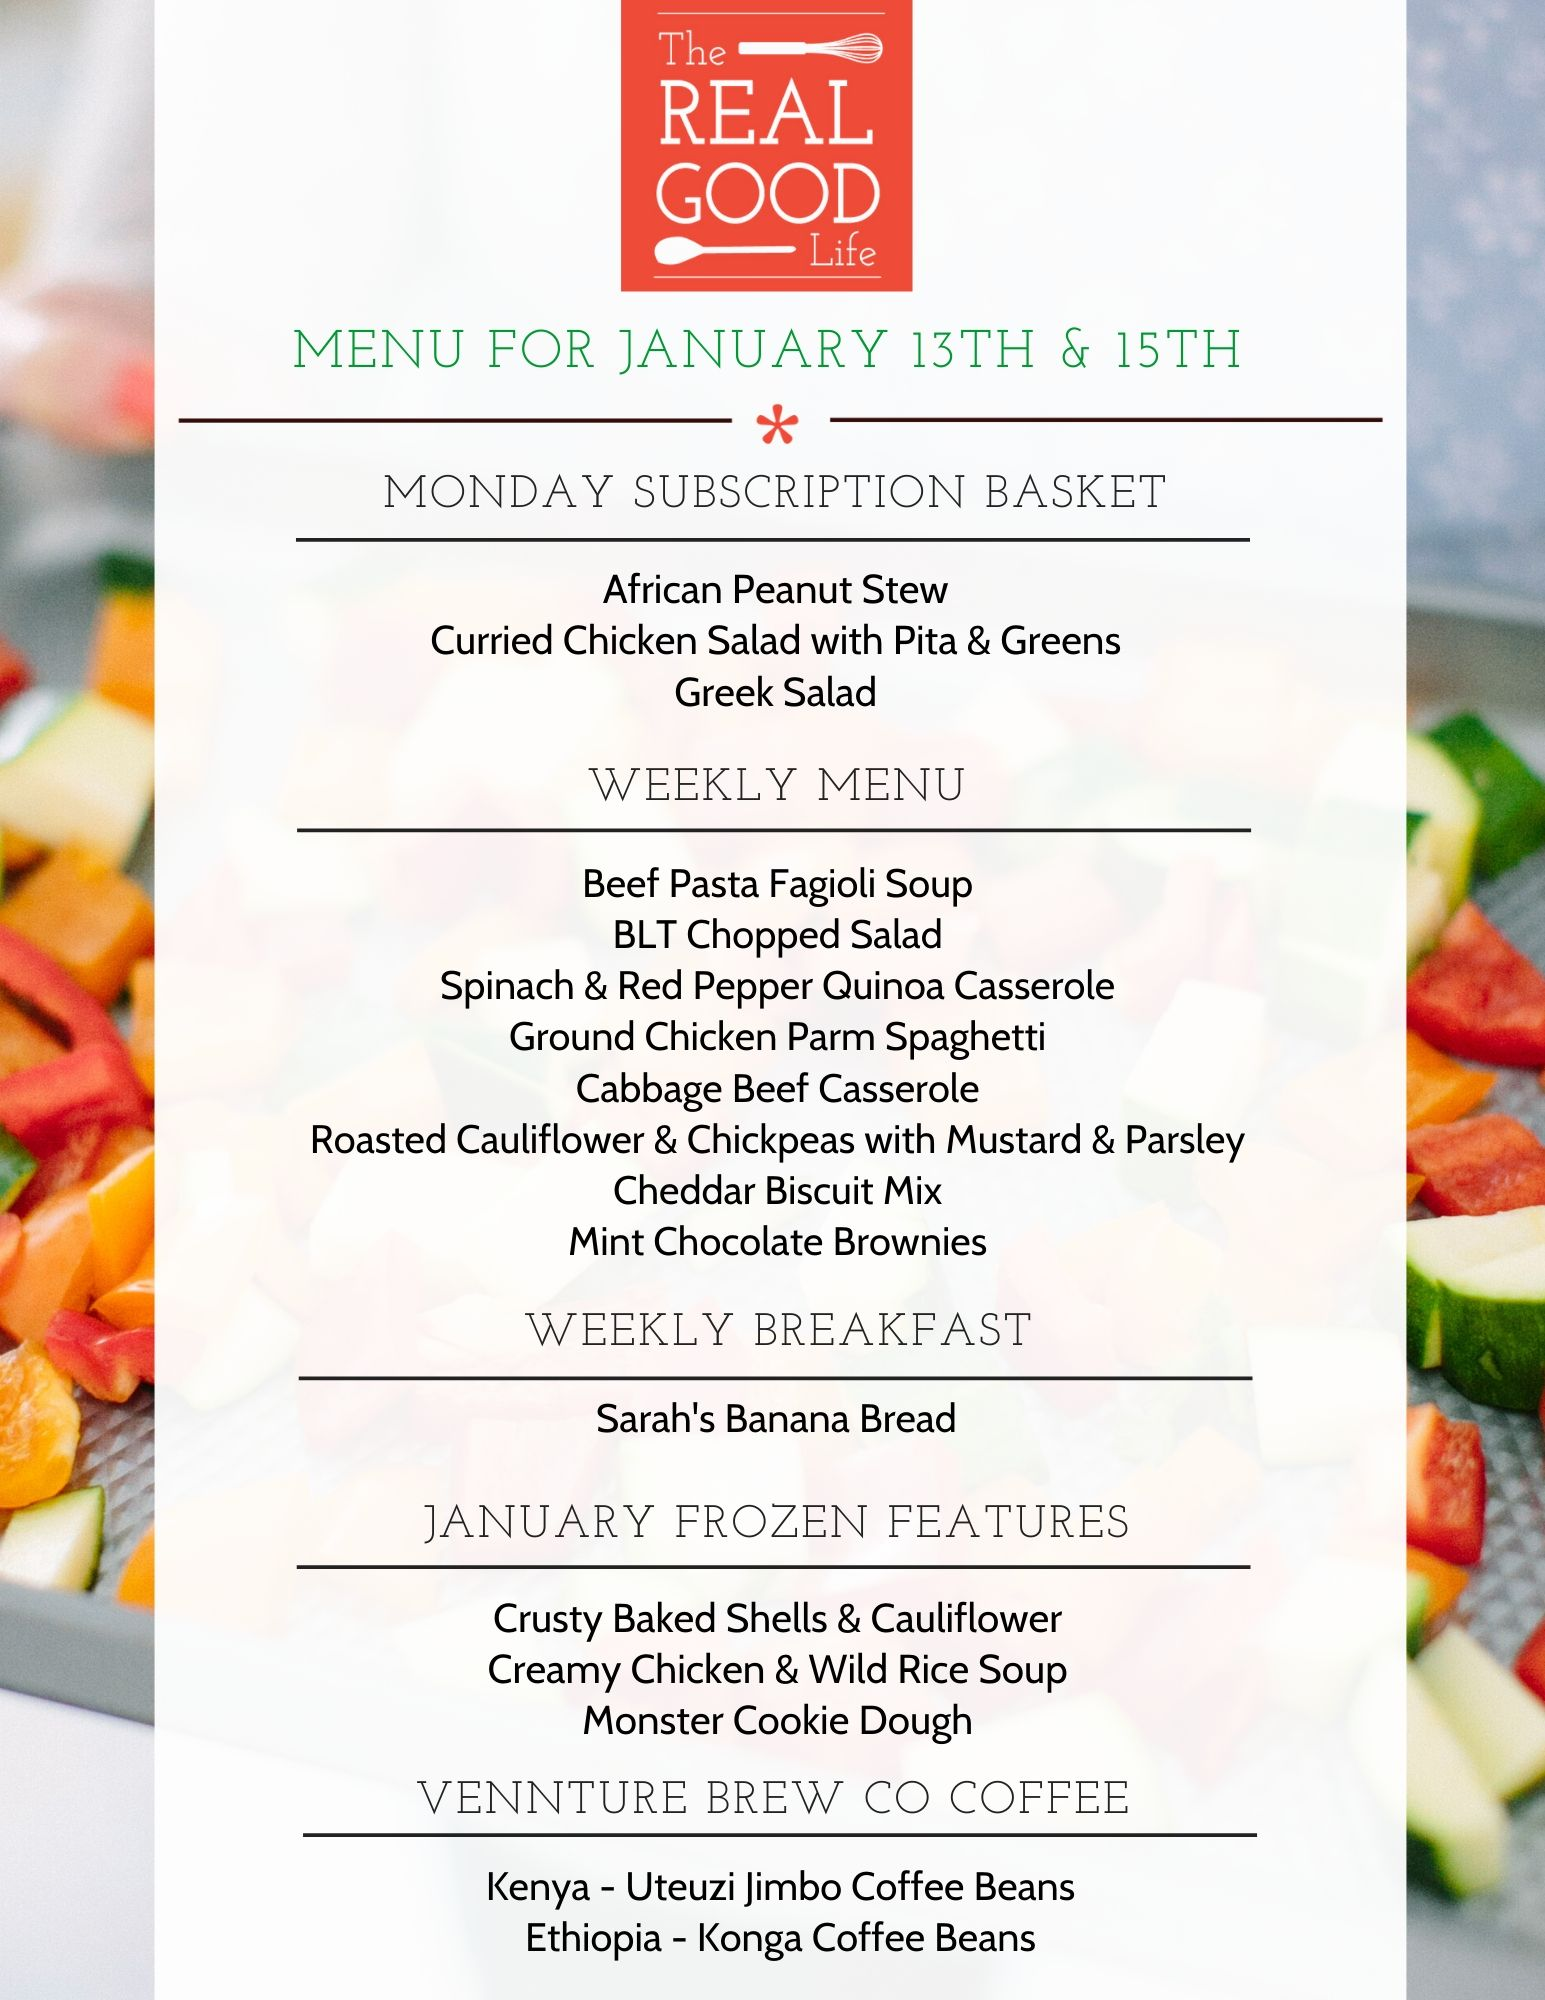 Menu for January 13th and 15th